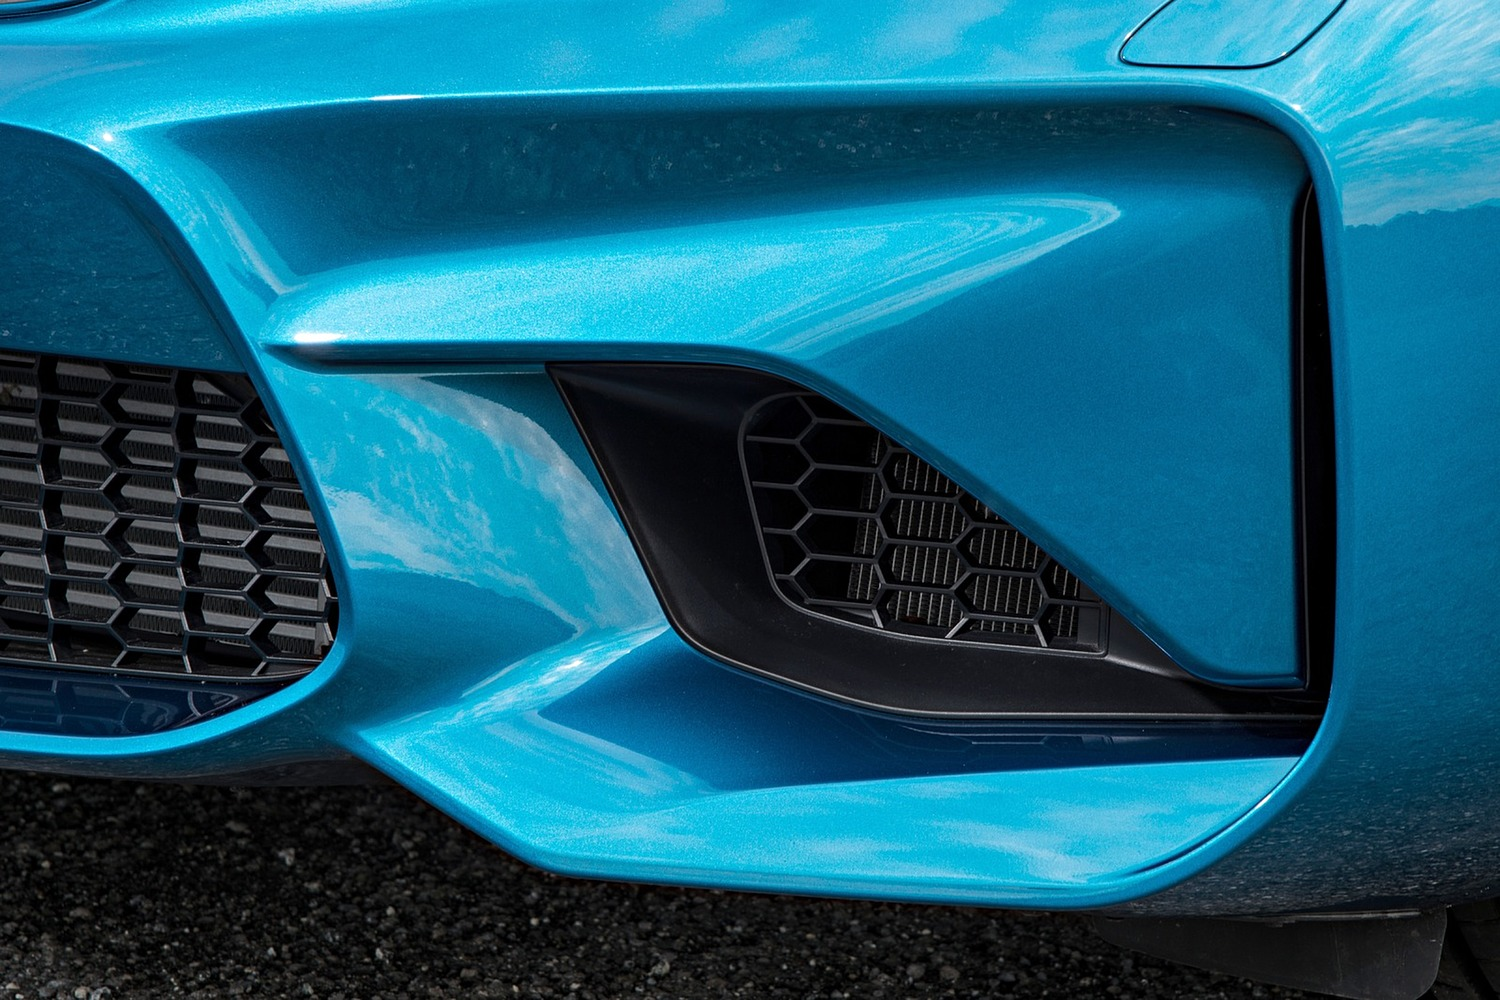 BMW M2 Coupe Exterior Detail (2016 model year shown)